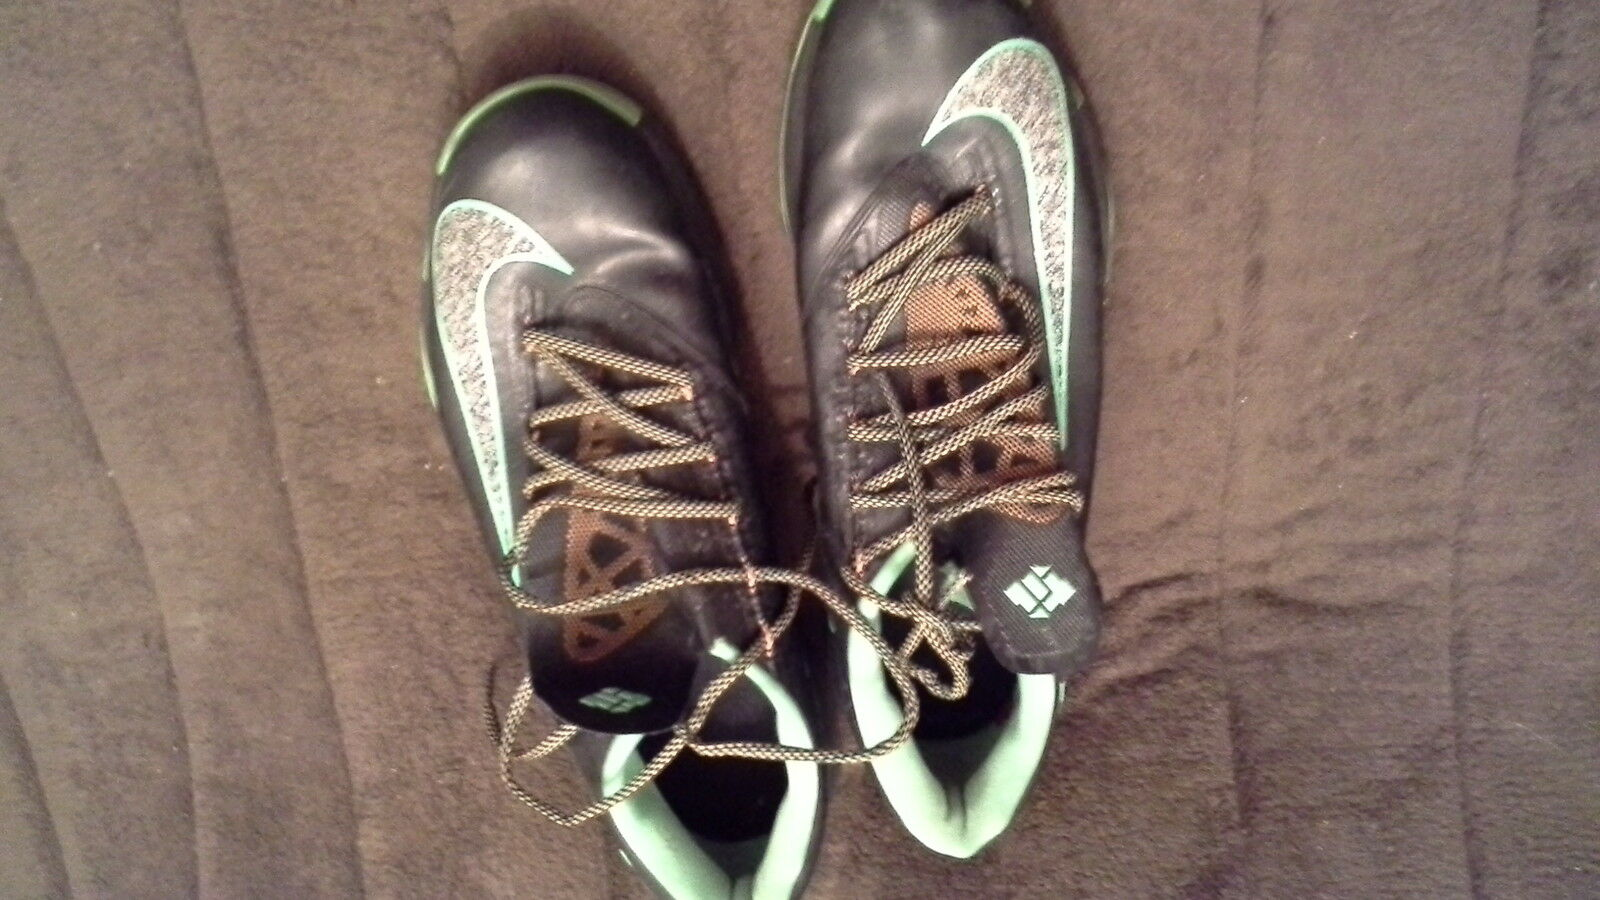 men's nike kd size 14  Cheap and fashionable